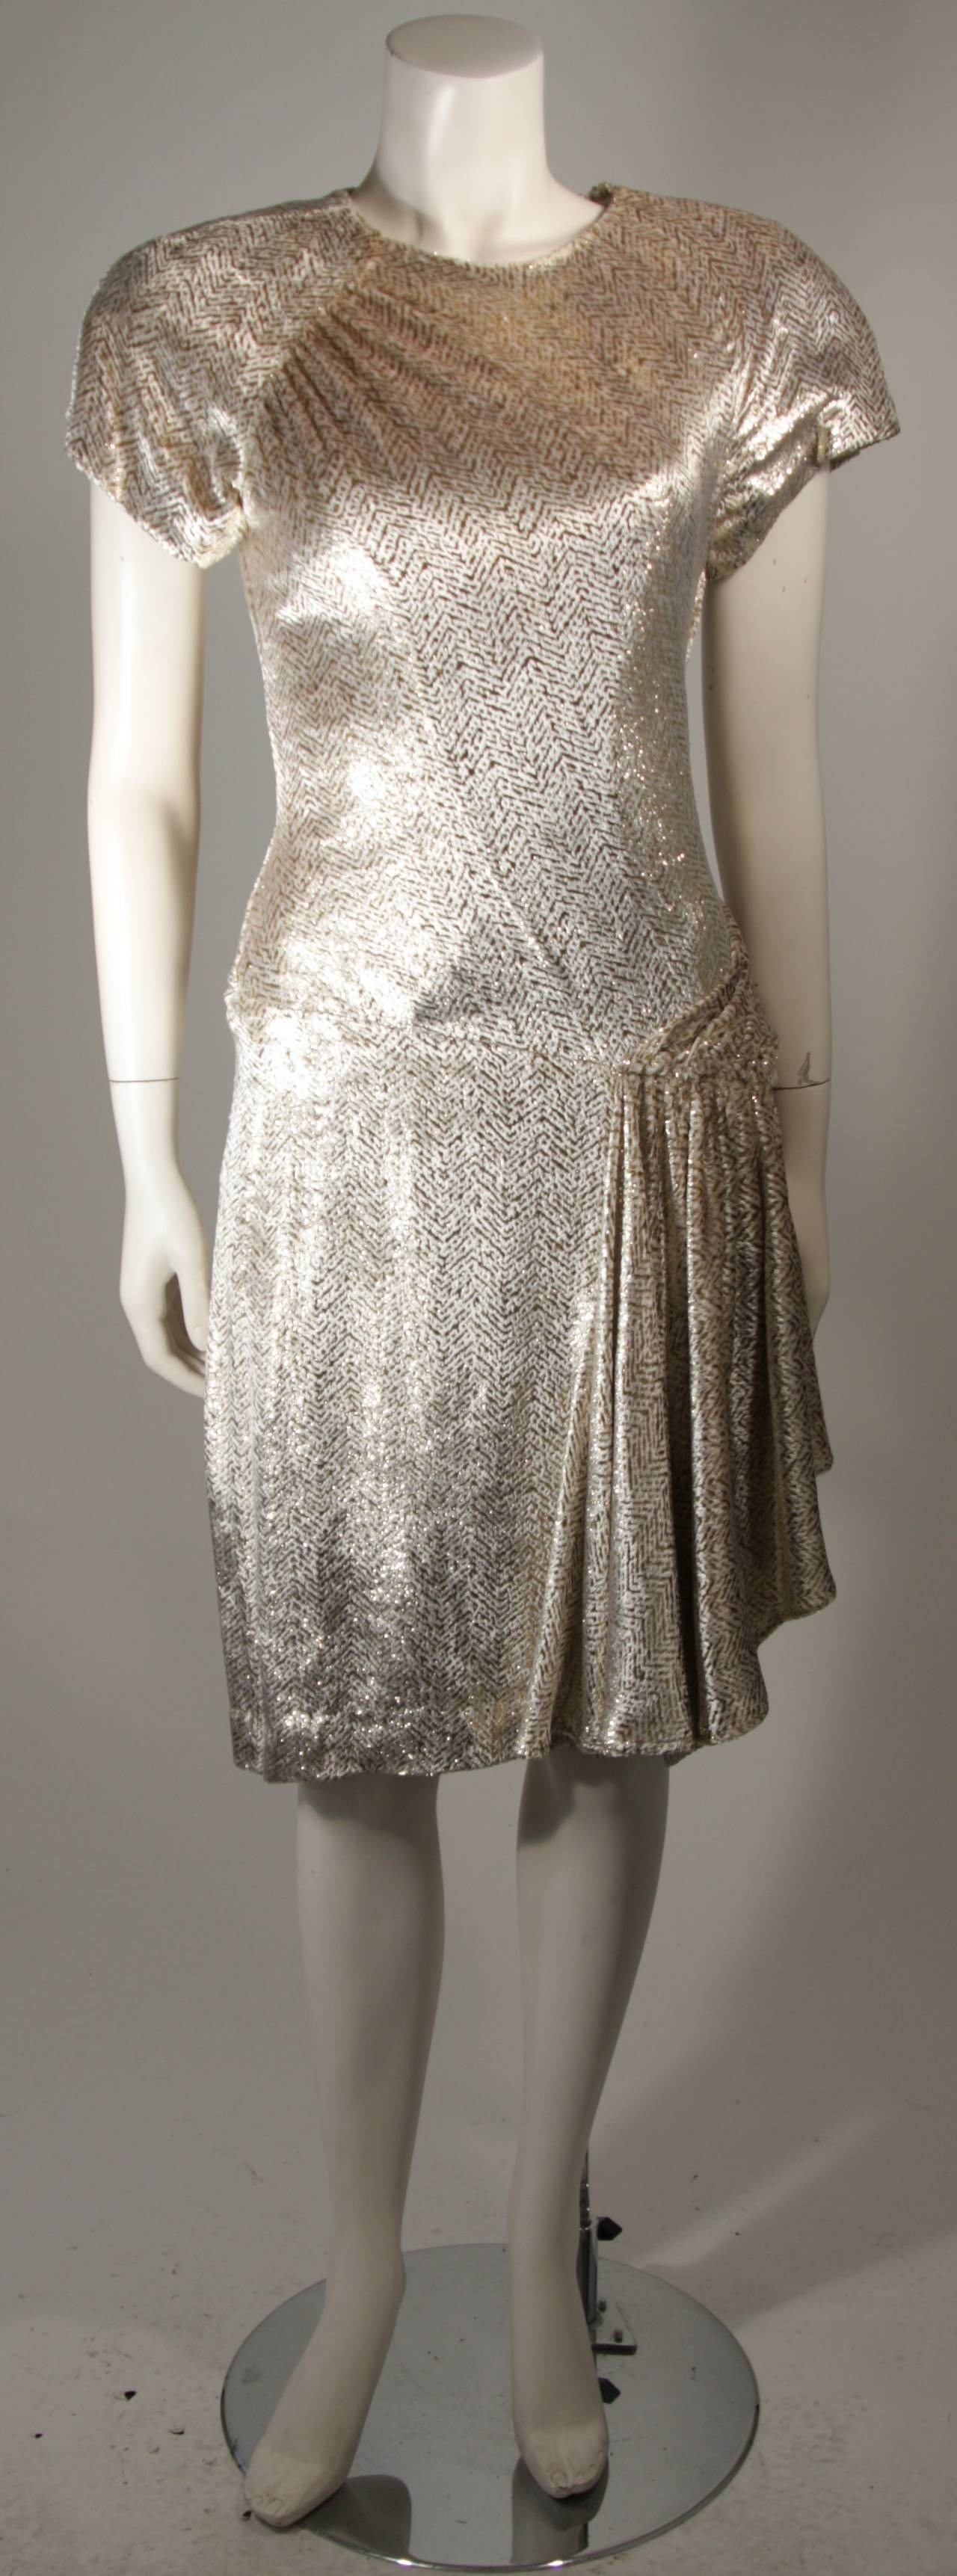 Vicky Tiel Ivory and Gold Velvet Texture Cocktail Dress Size 38 2